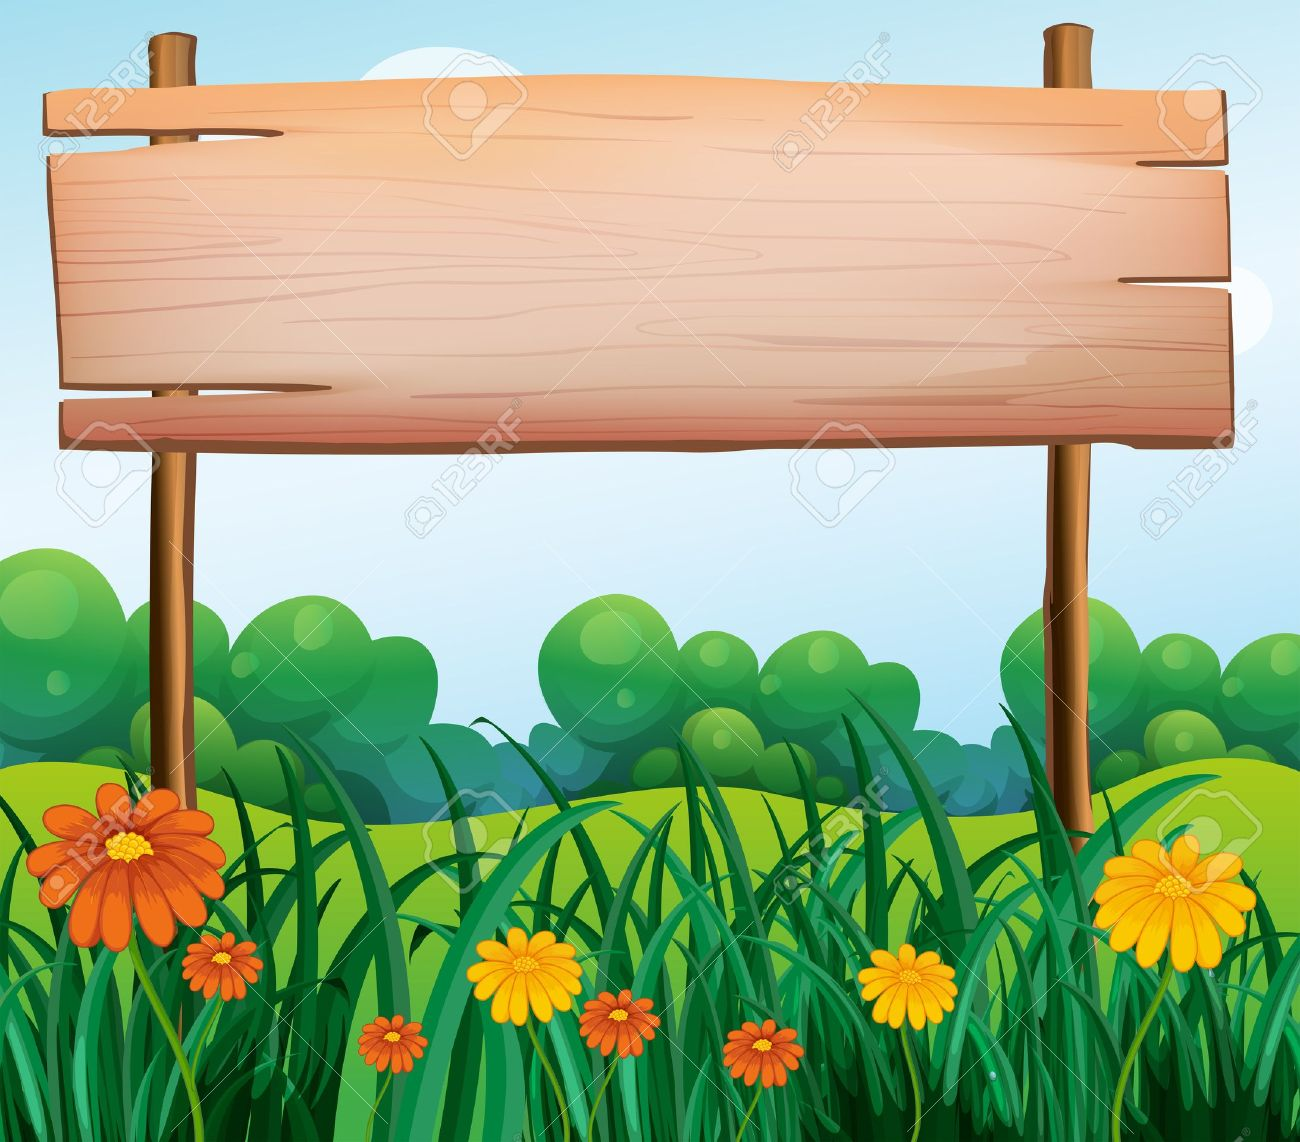 Illustration of a wooden signboard in the garden.